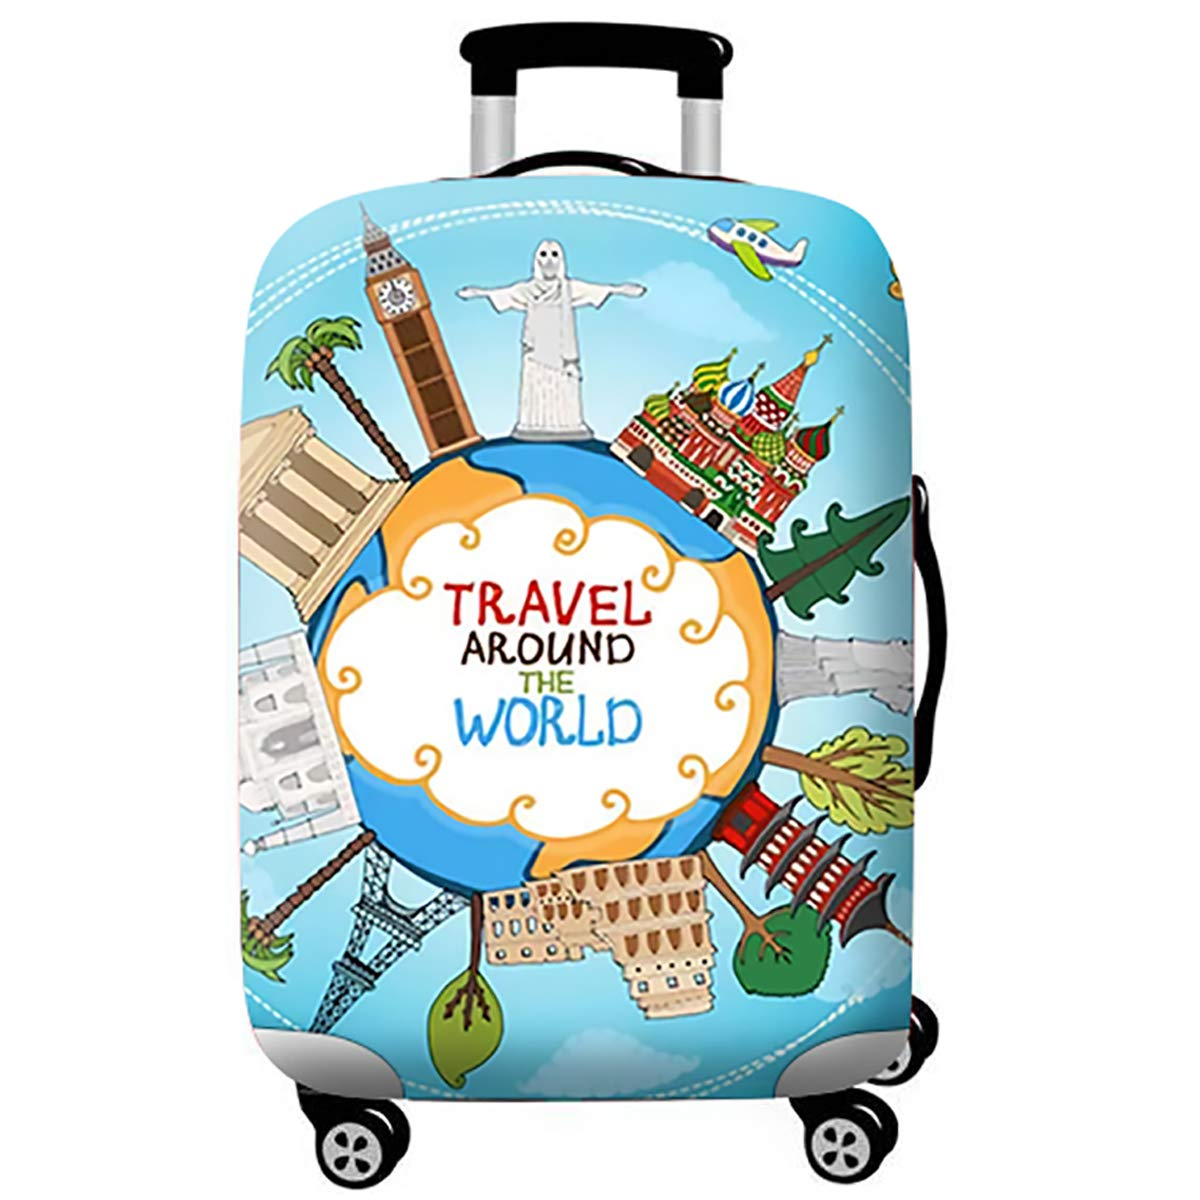 WUJIAONIAO Travel Luggage Cover Spandex Suitcase Protector Washable Baggage Covers (L (for 25-28 inch luggage), ocean)